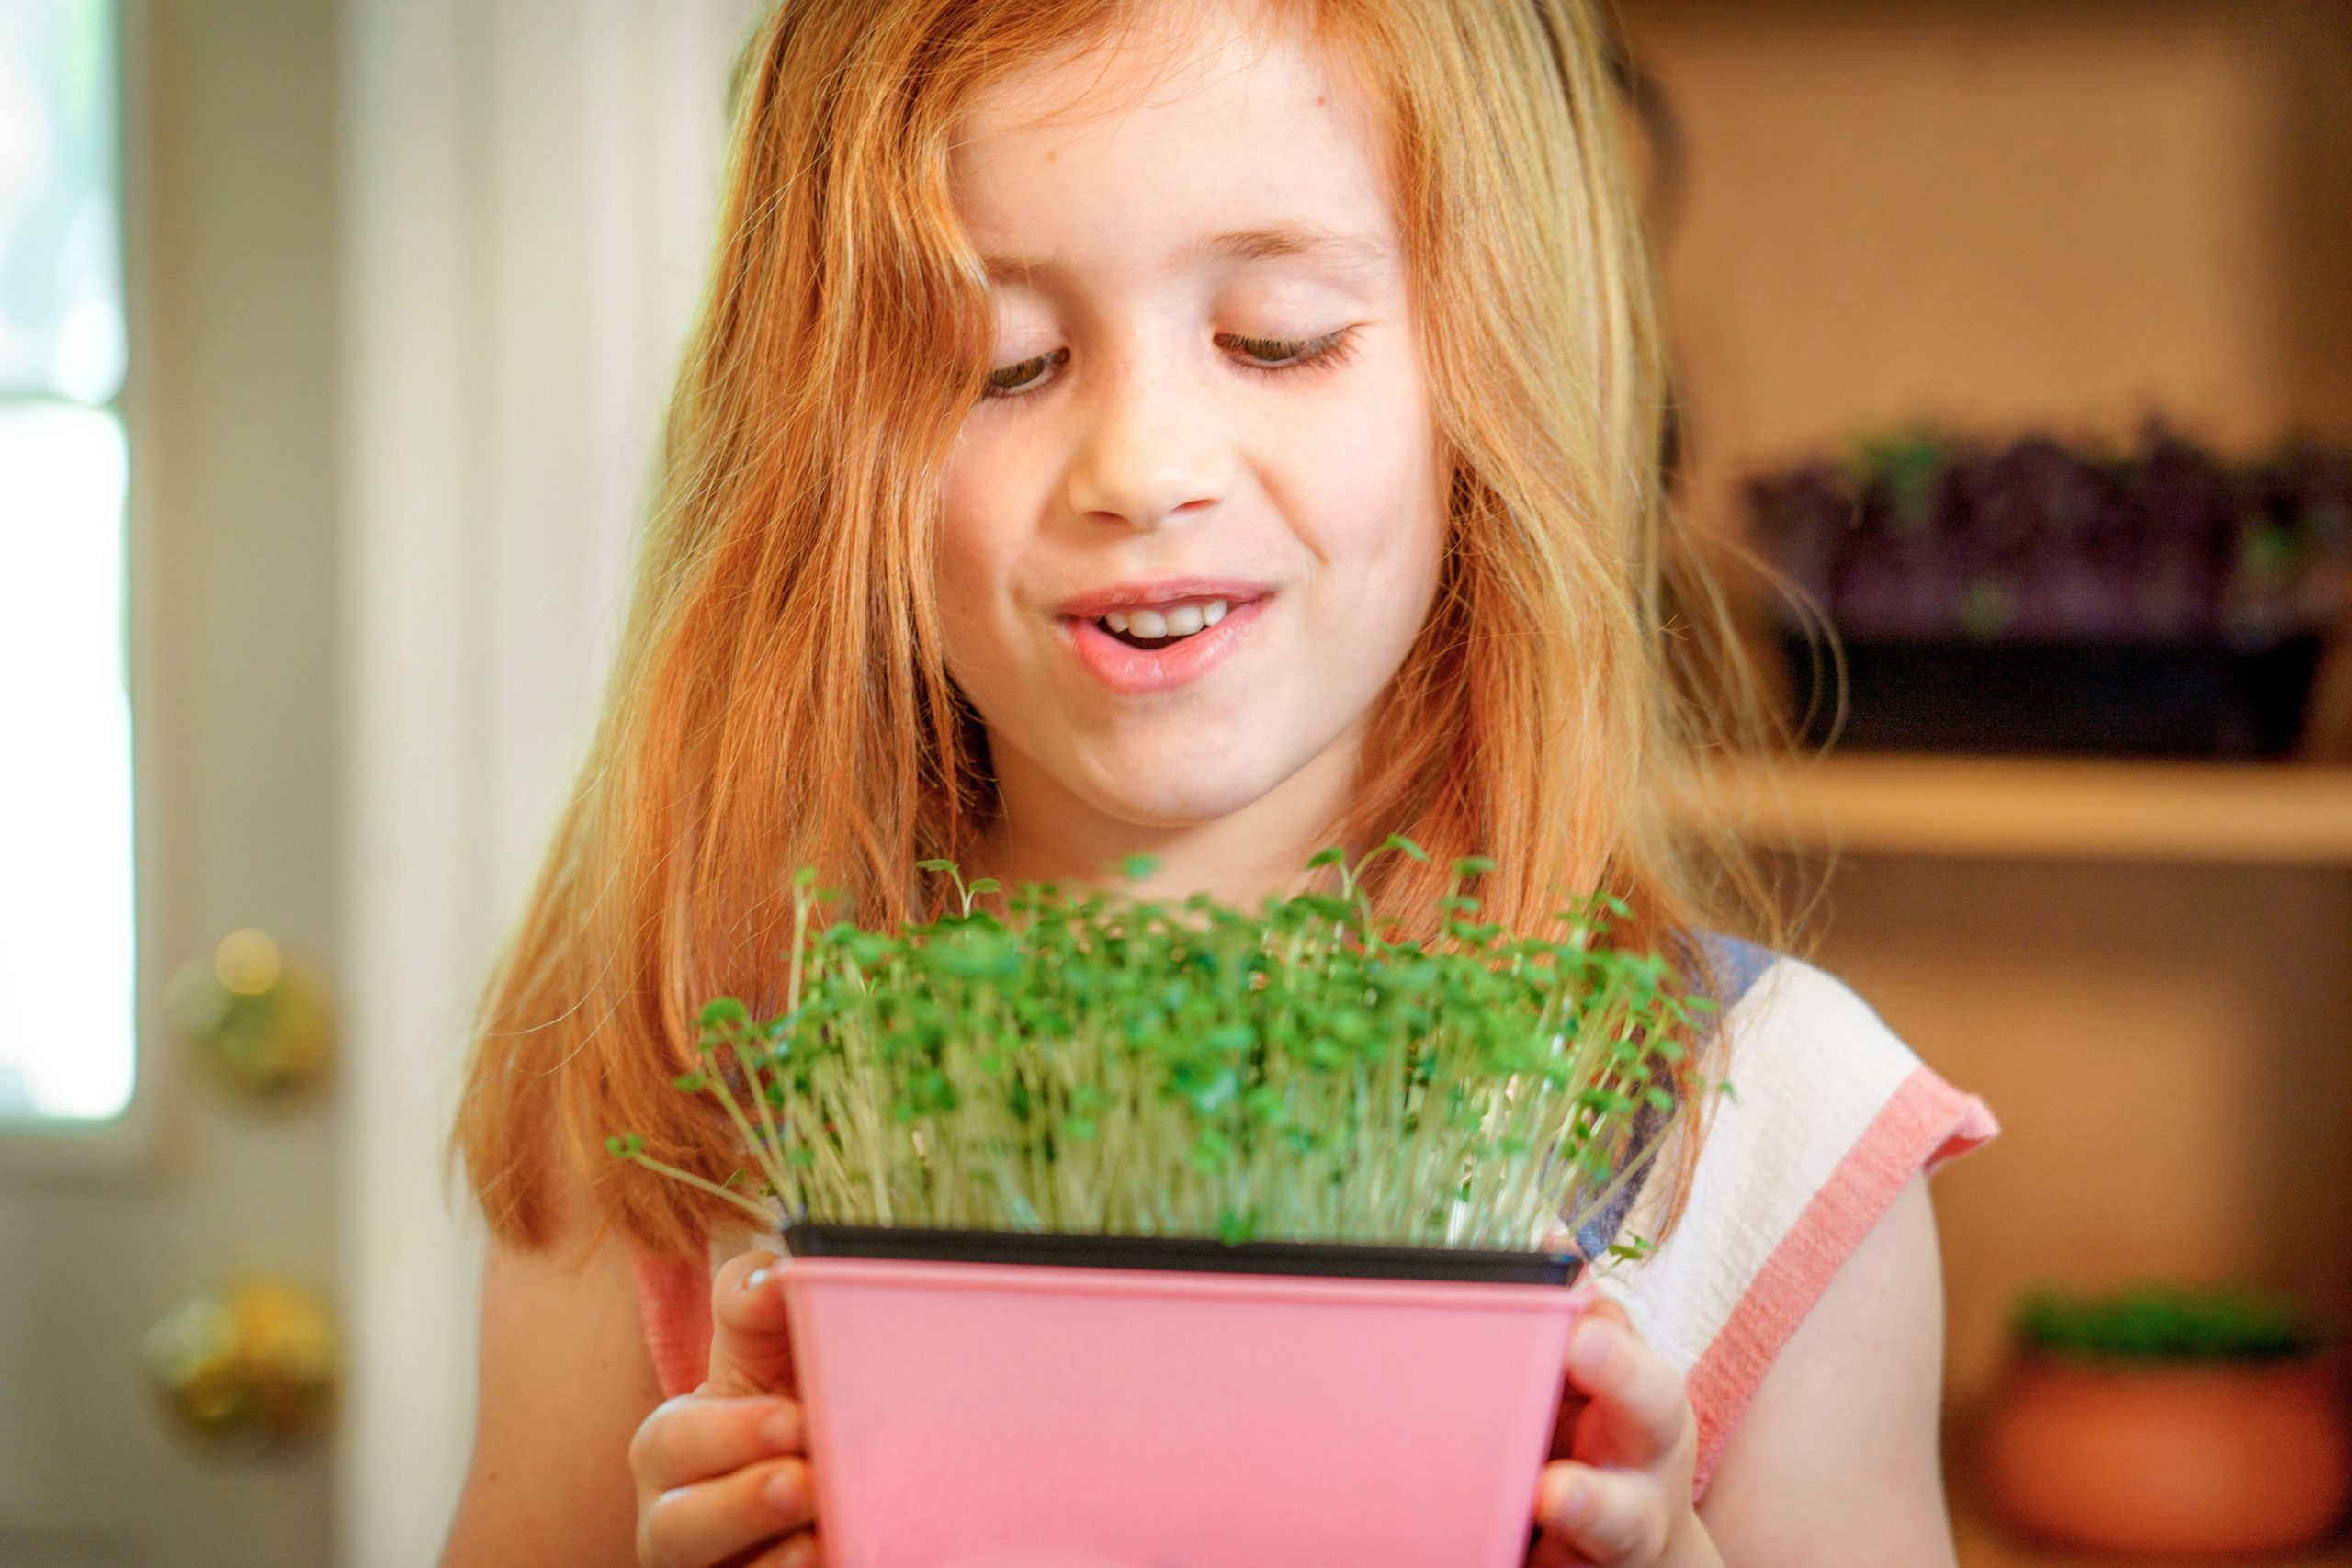 Young girl with microgreens- Autumn Payne, photogrpaher